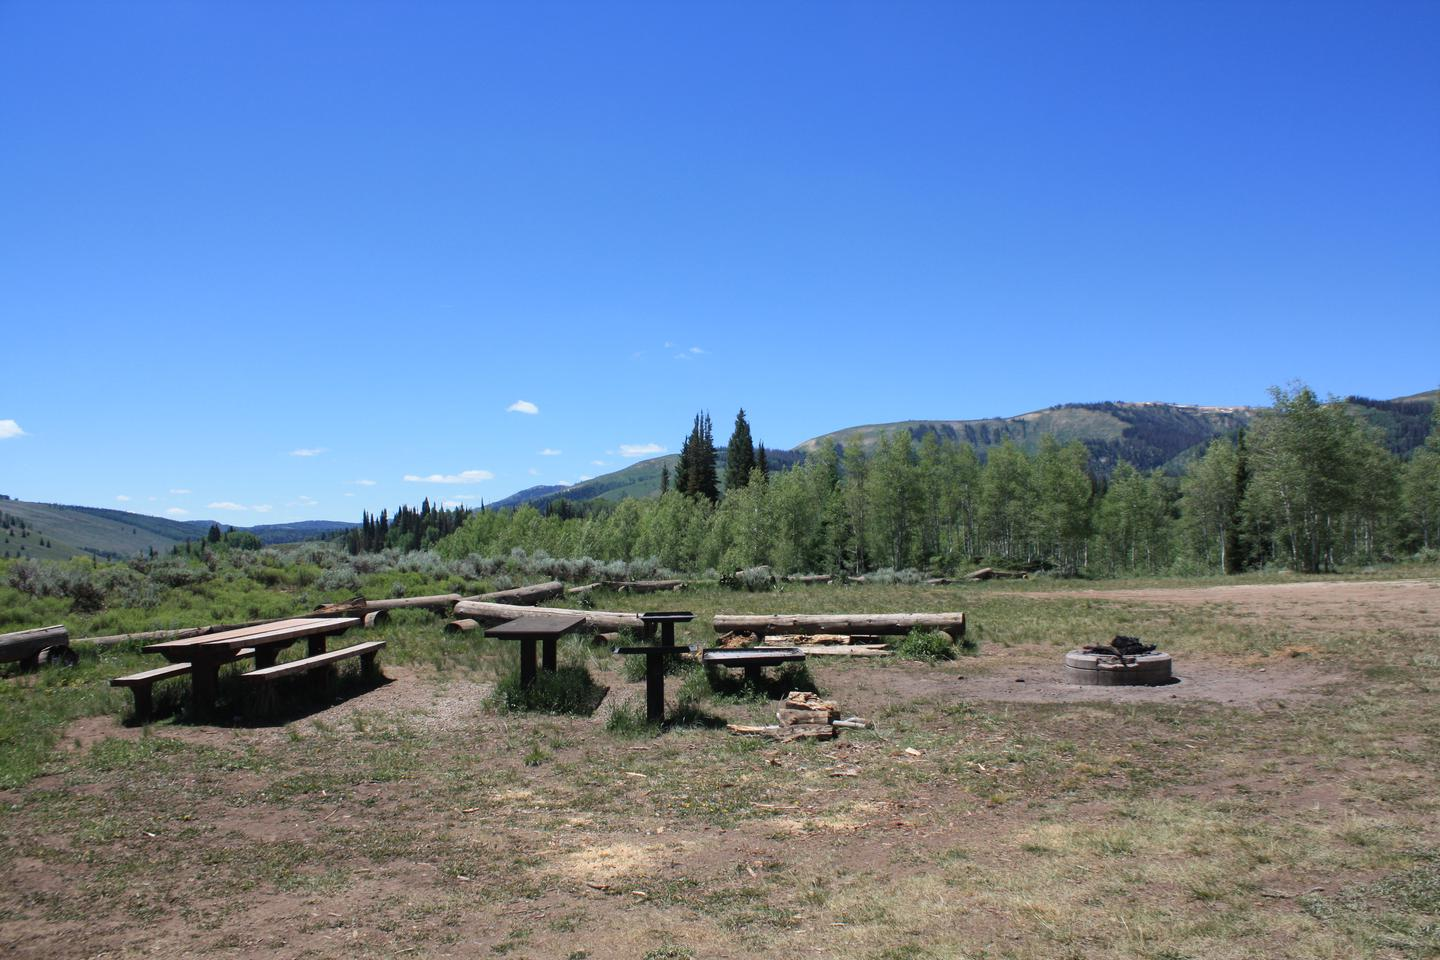 Lake Canyon Campground  -   Rolfson Group Site  CLake Canyon Campground  - Rolfson Group Site  C